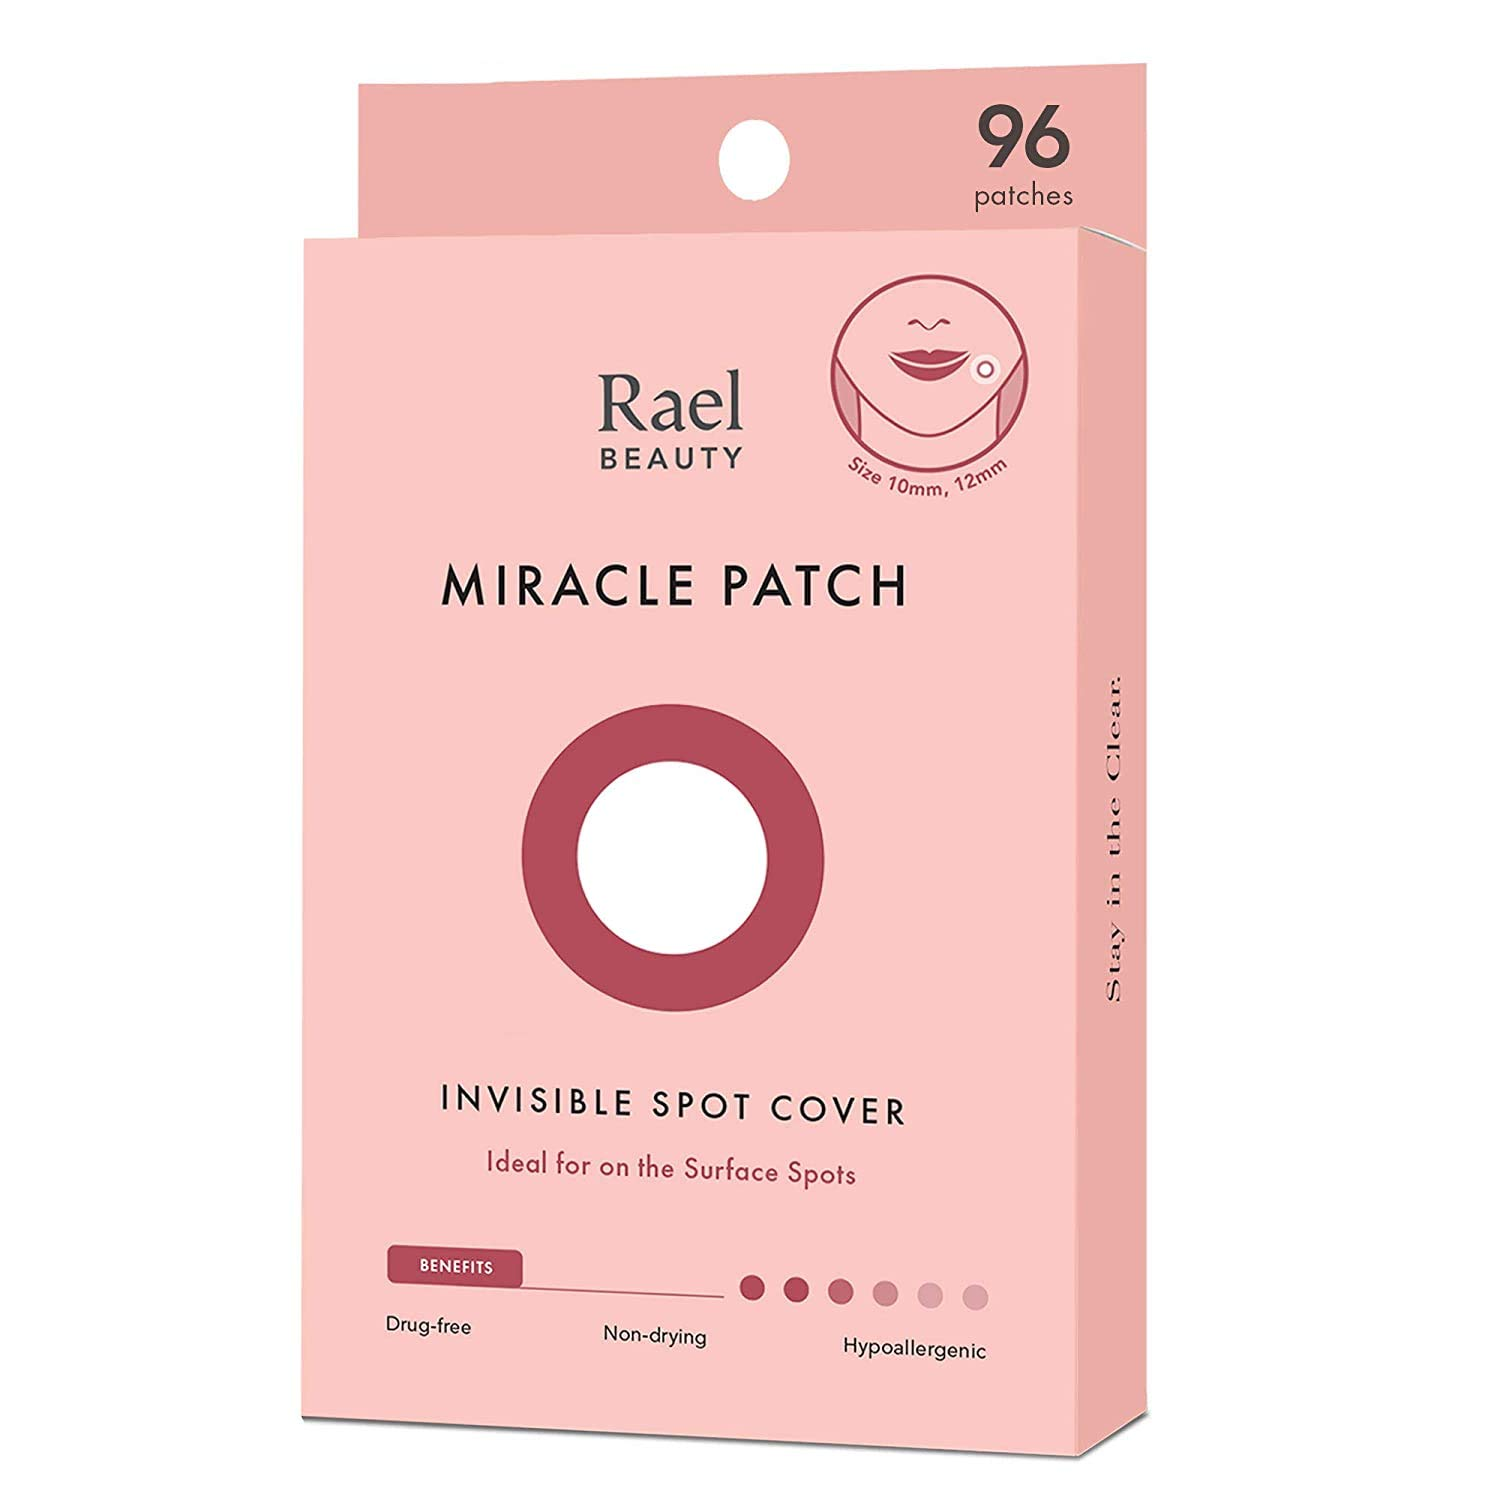 Rael 10mm & 12mm, 96 Count  Acne Pimple Healing Patch $11.55